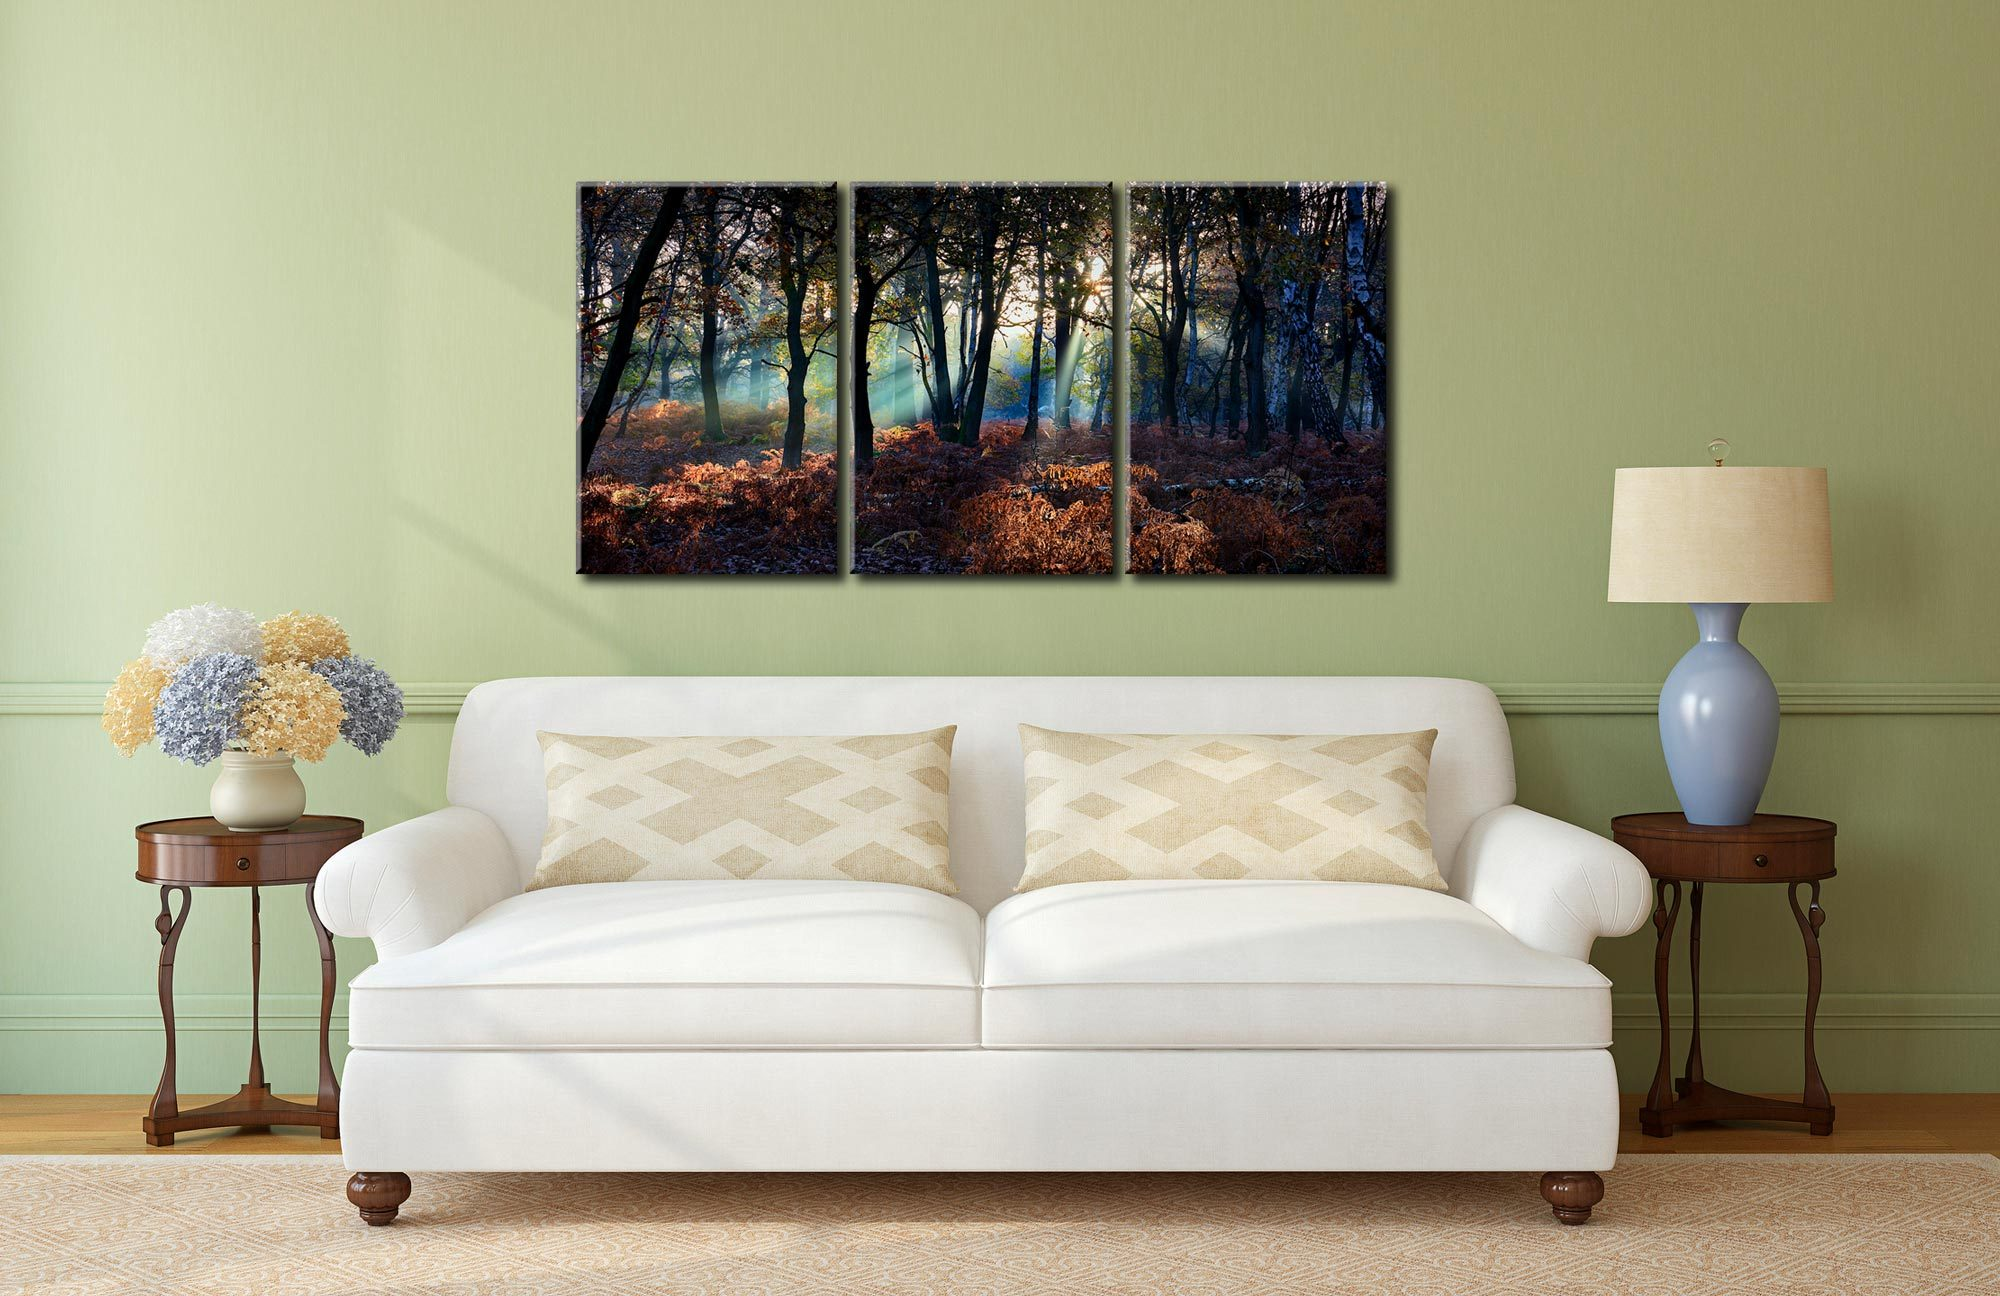 Sherwood Forest Beams - 3 Panel Canvas on Wall